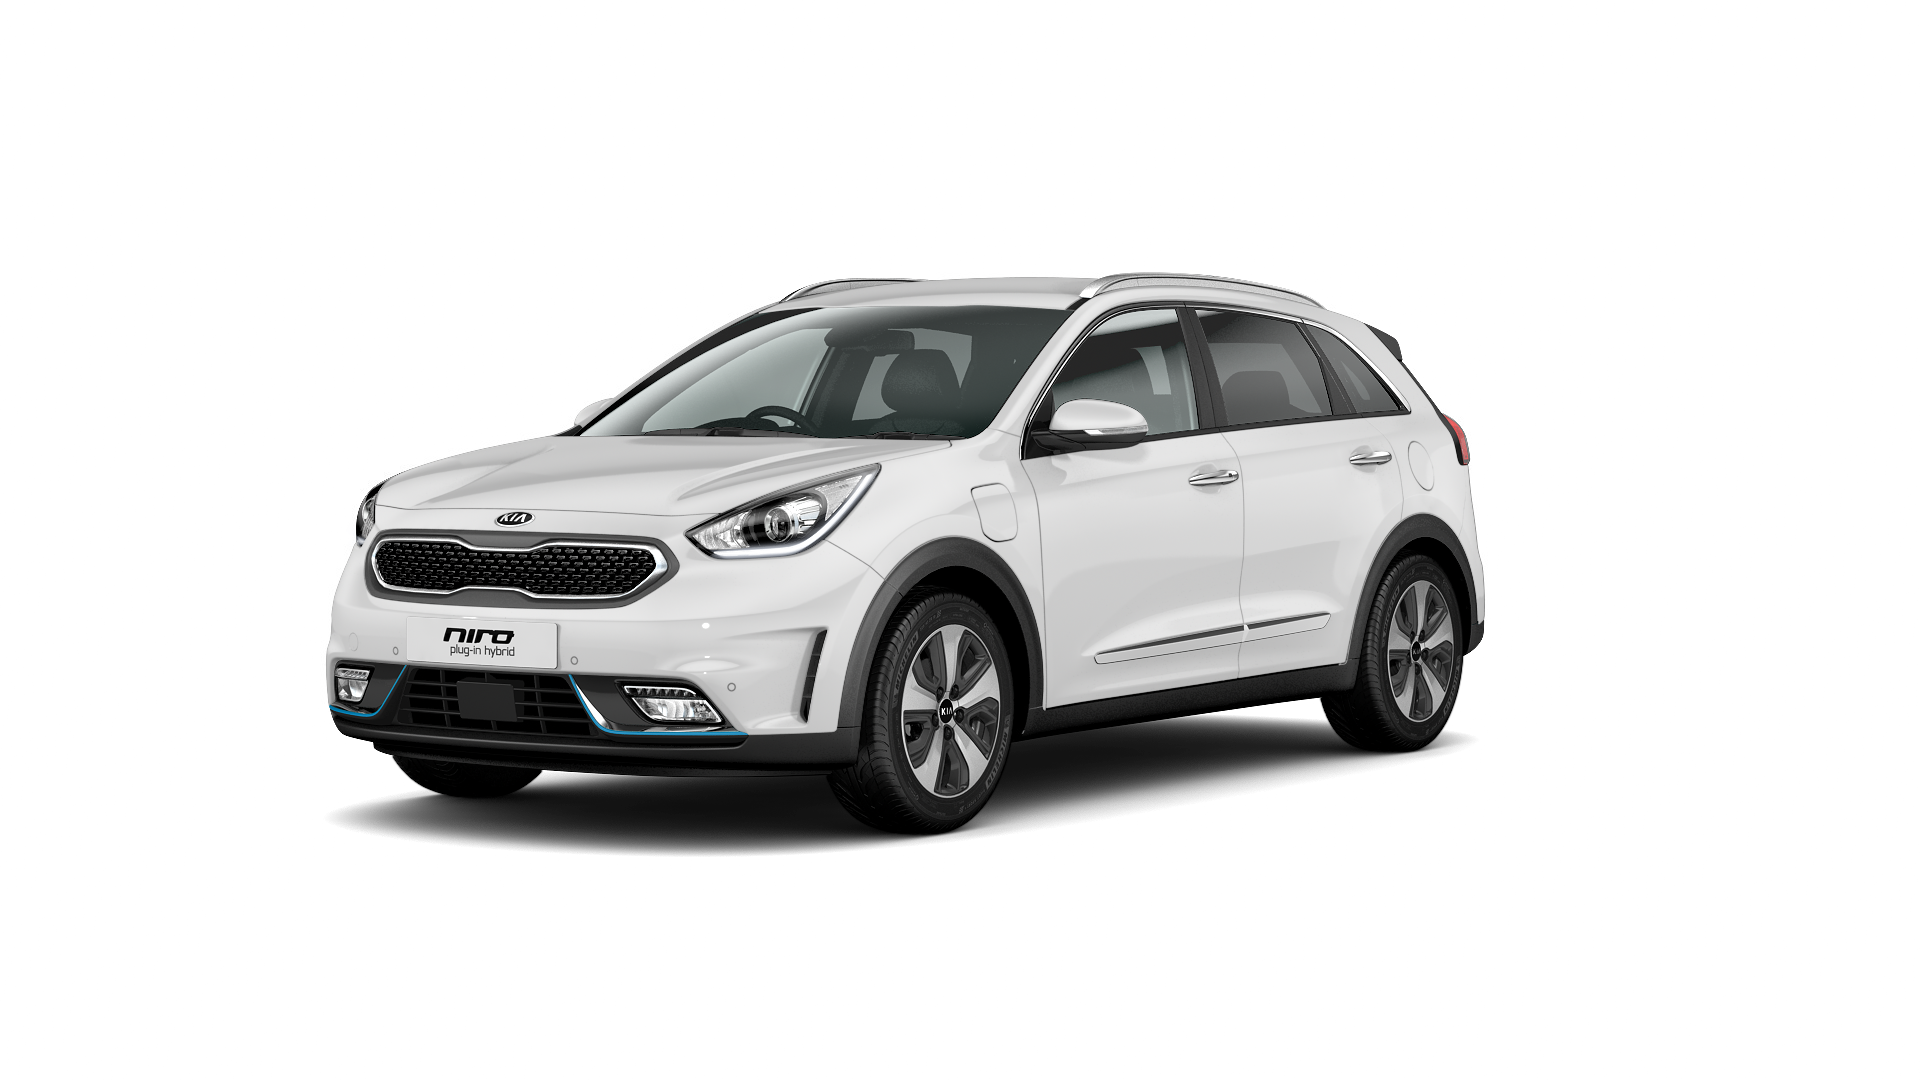 With This Car You Will Experience The Top Qualities Of A Modern Crossover Compact Exterior Roomy And Refined Interior Harmoniously Blended Best